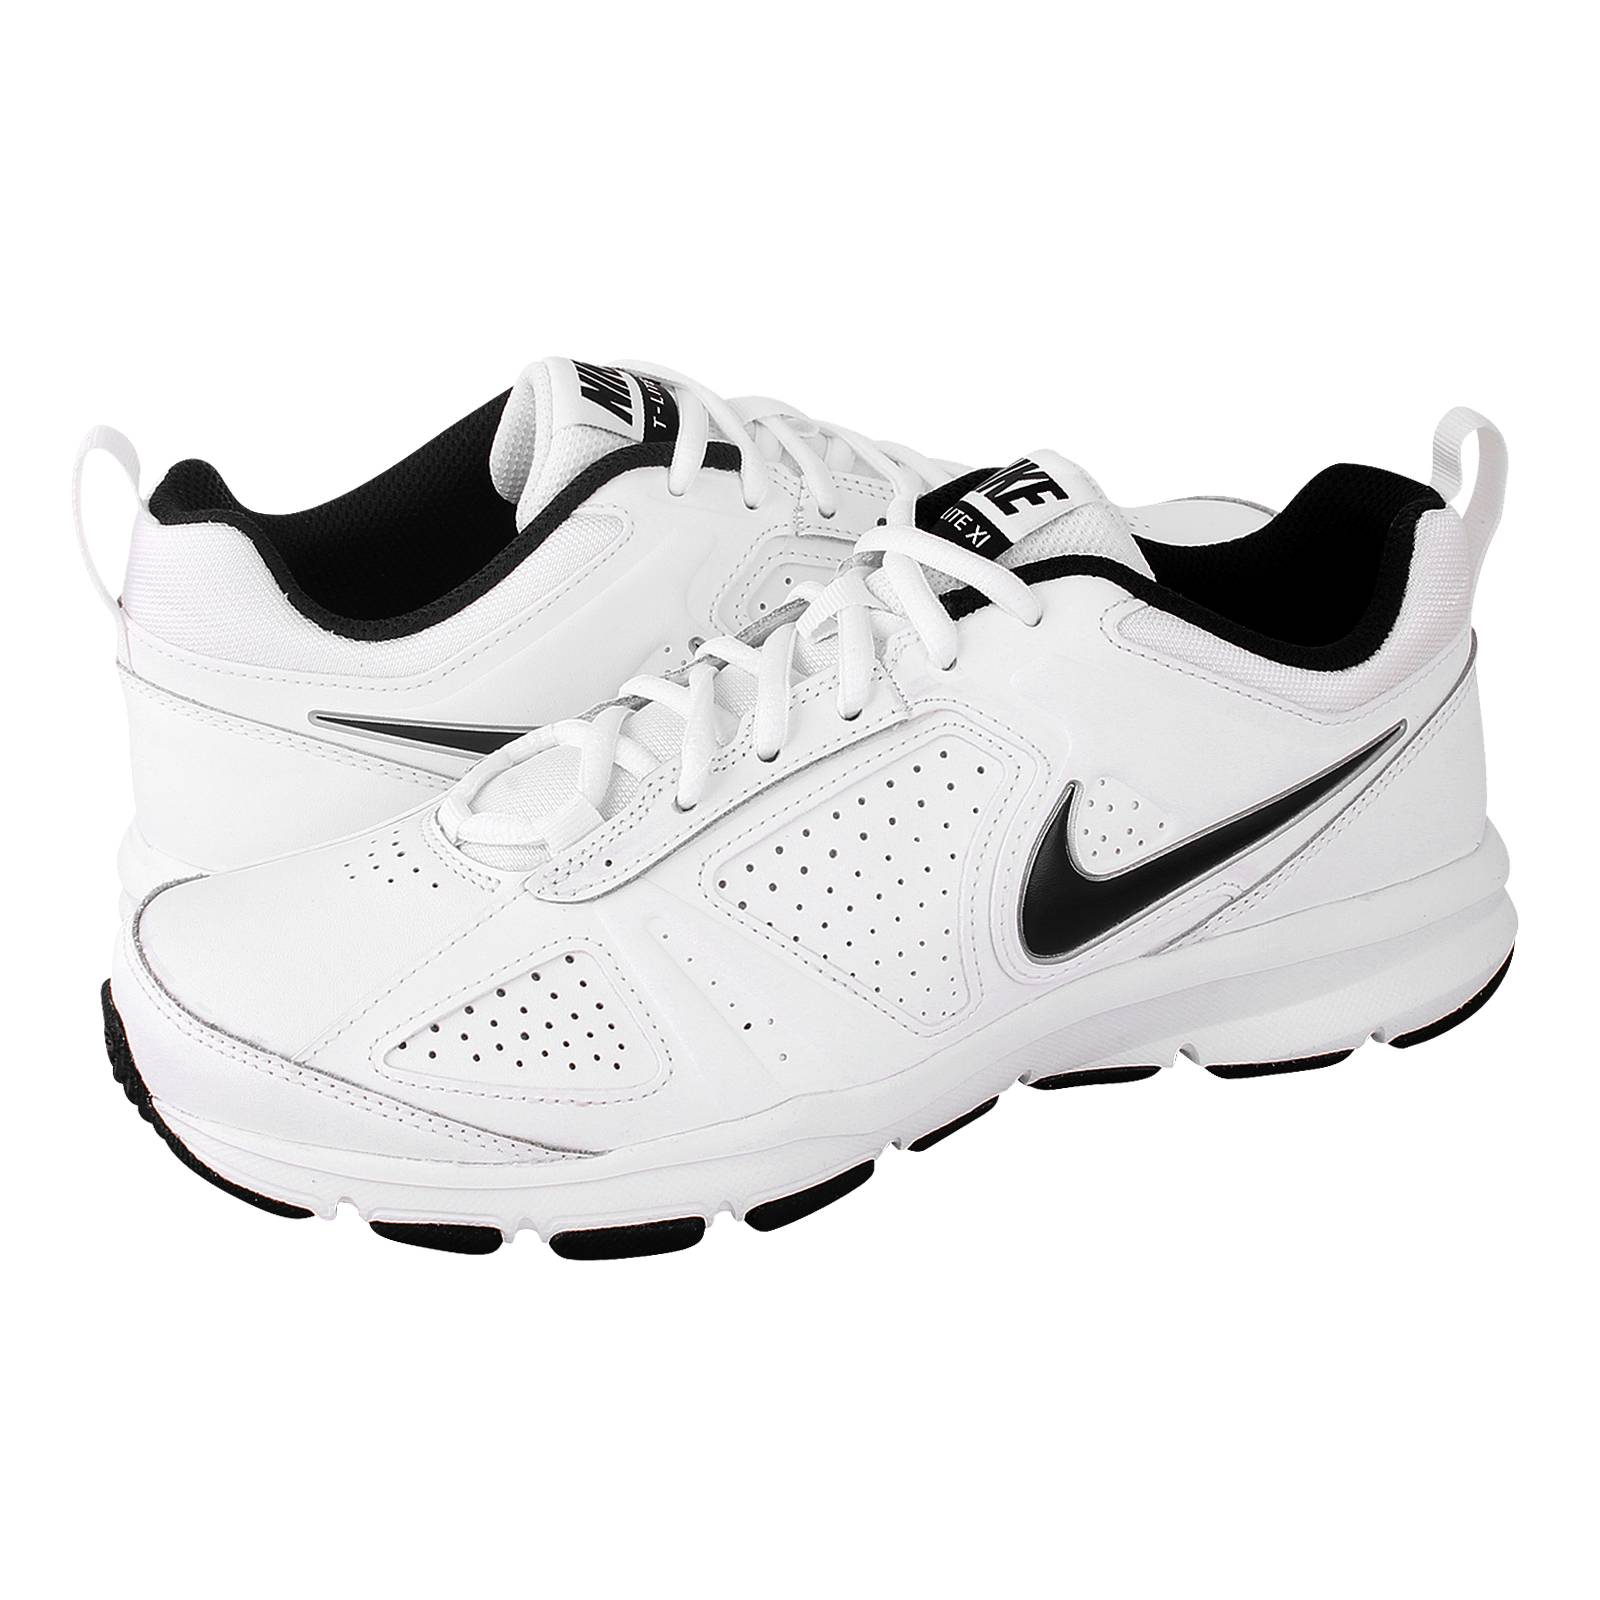 t lite xi nike men 39 s athletic shoes made of leather. Black Bedroom Furniture Sets. Home Design Ideas